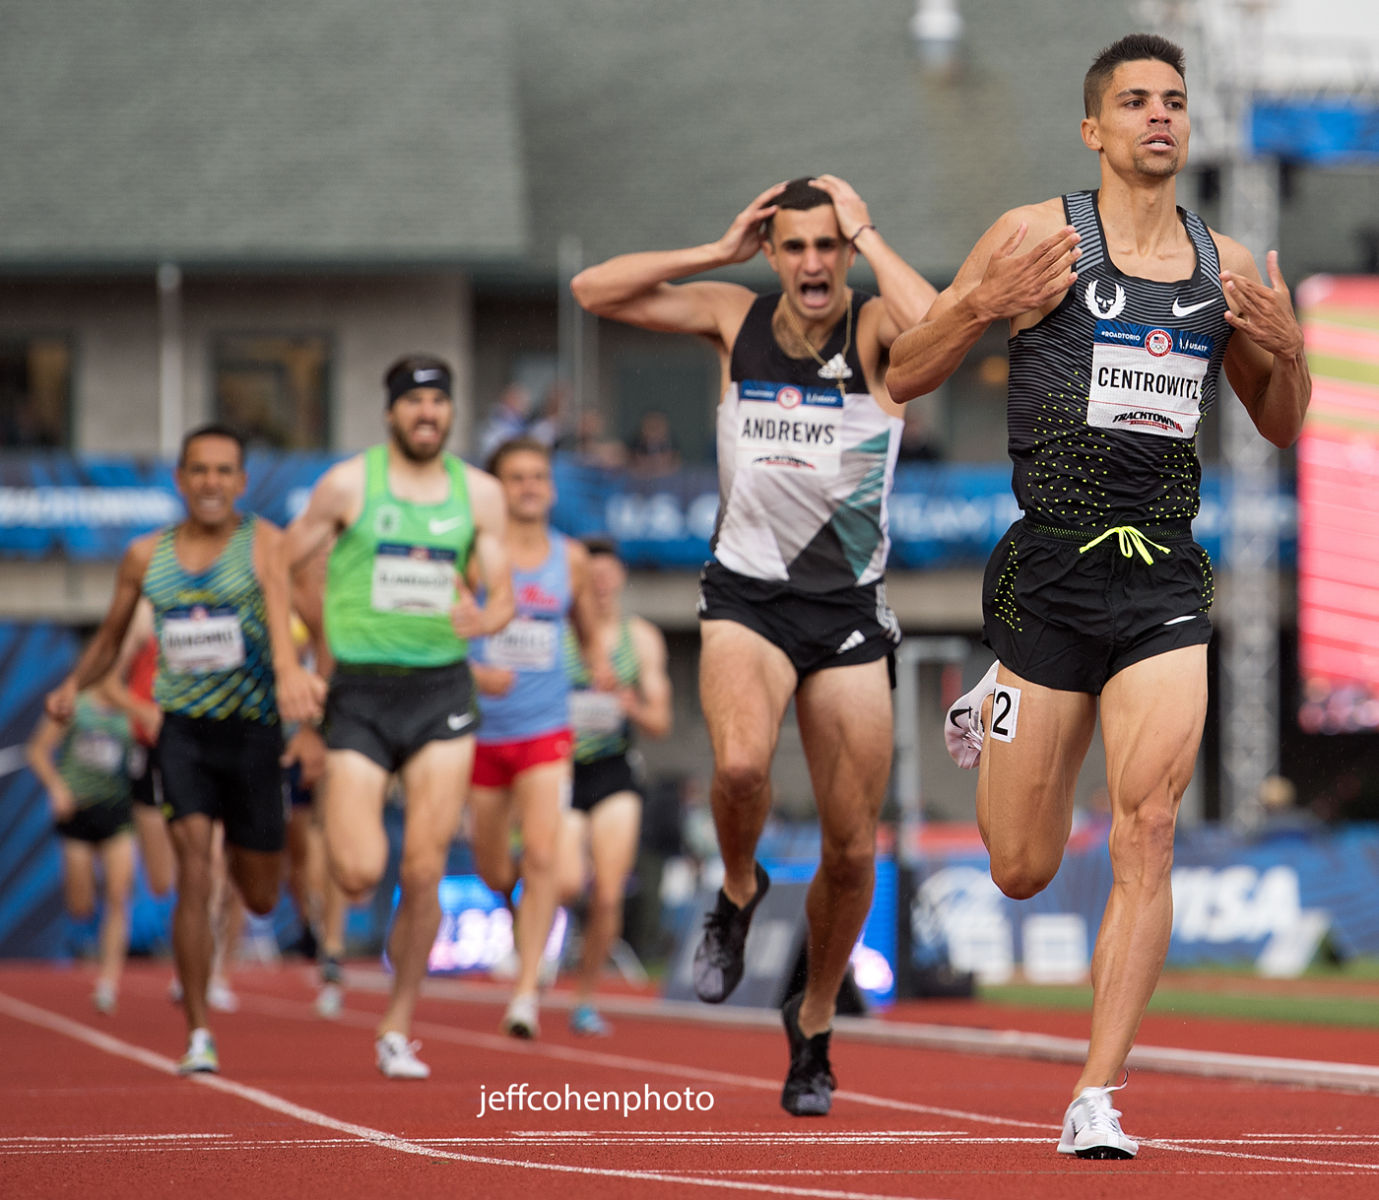 1r2016_oly_trials_day_9_centrowitz_1500m_win_a_jeff_cohen_photo_29942_web.jpg